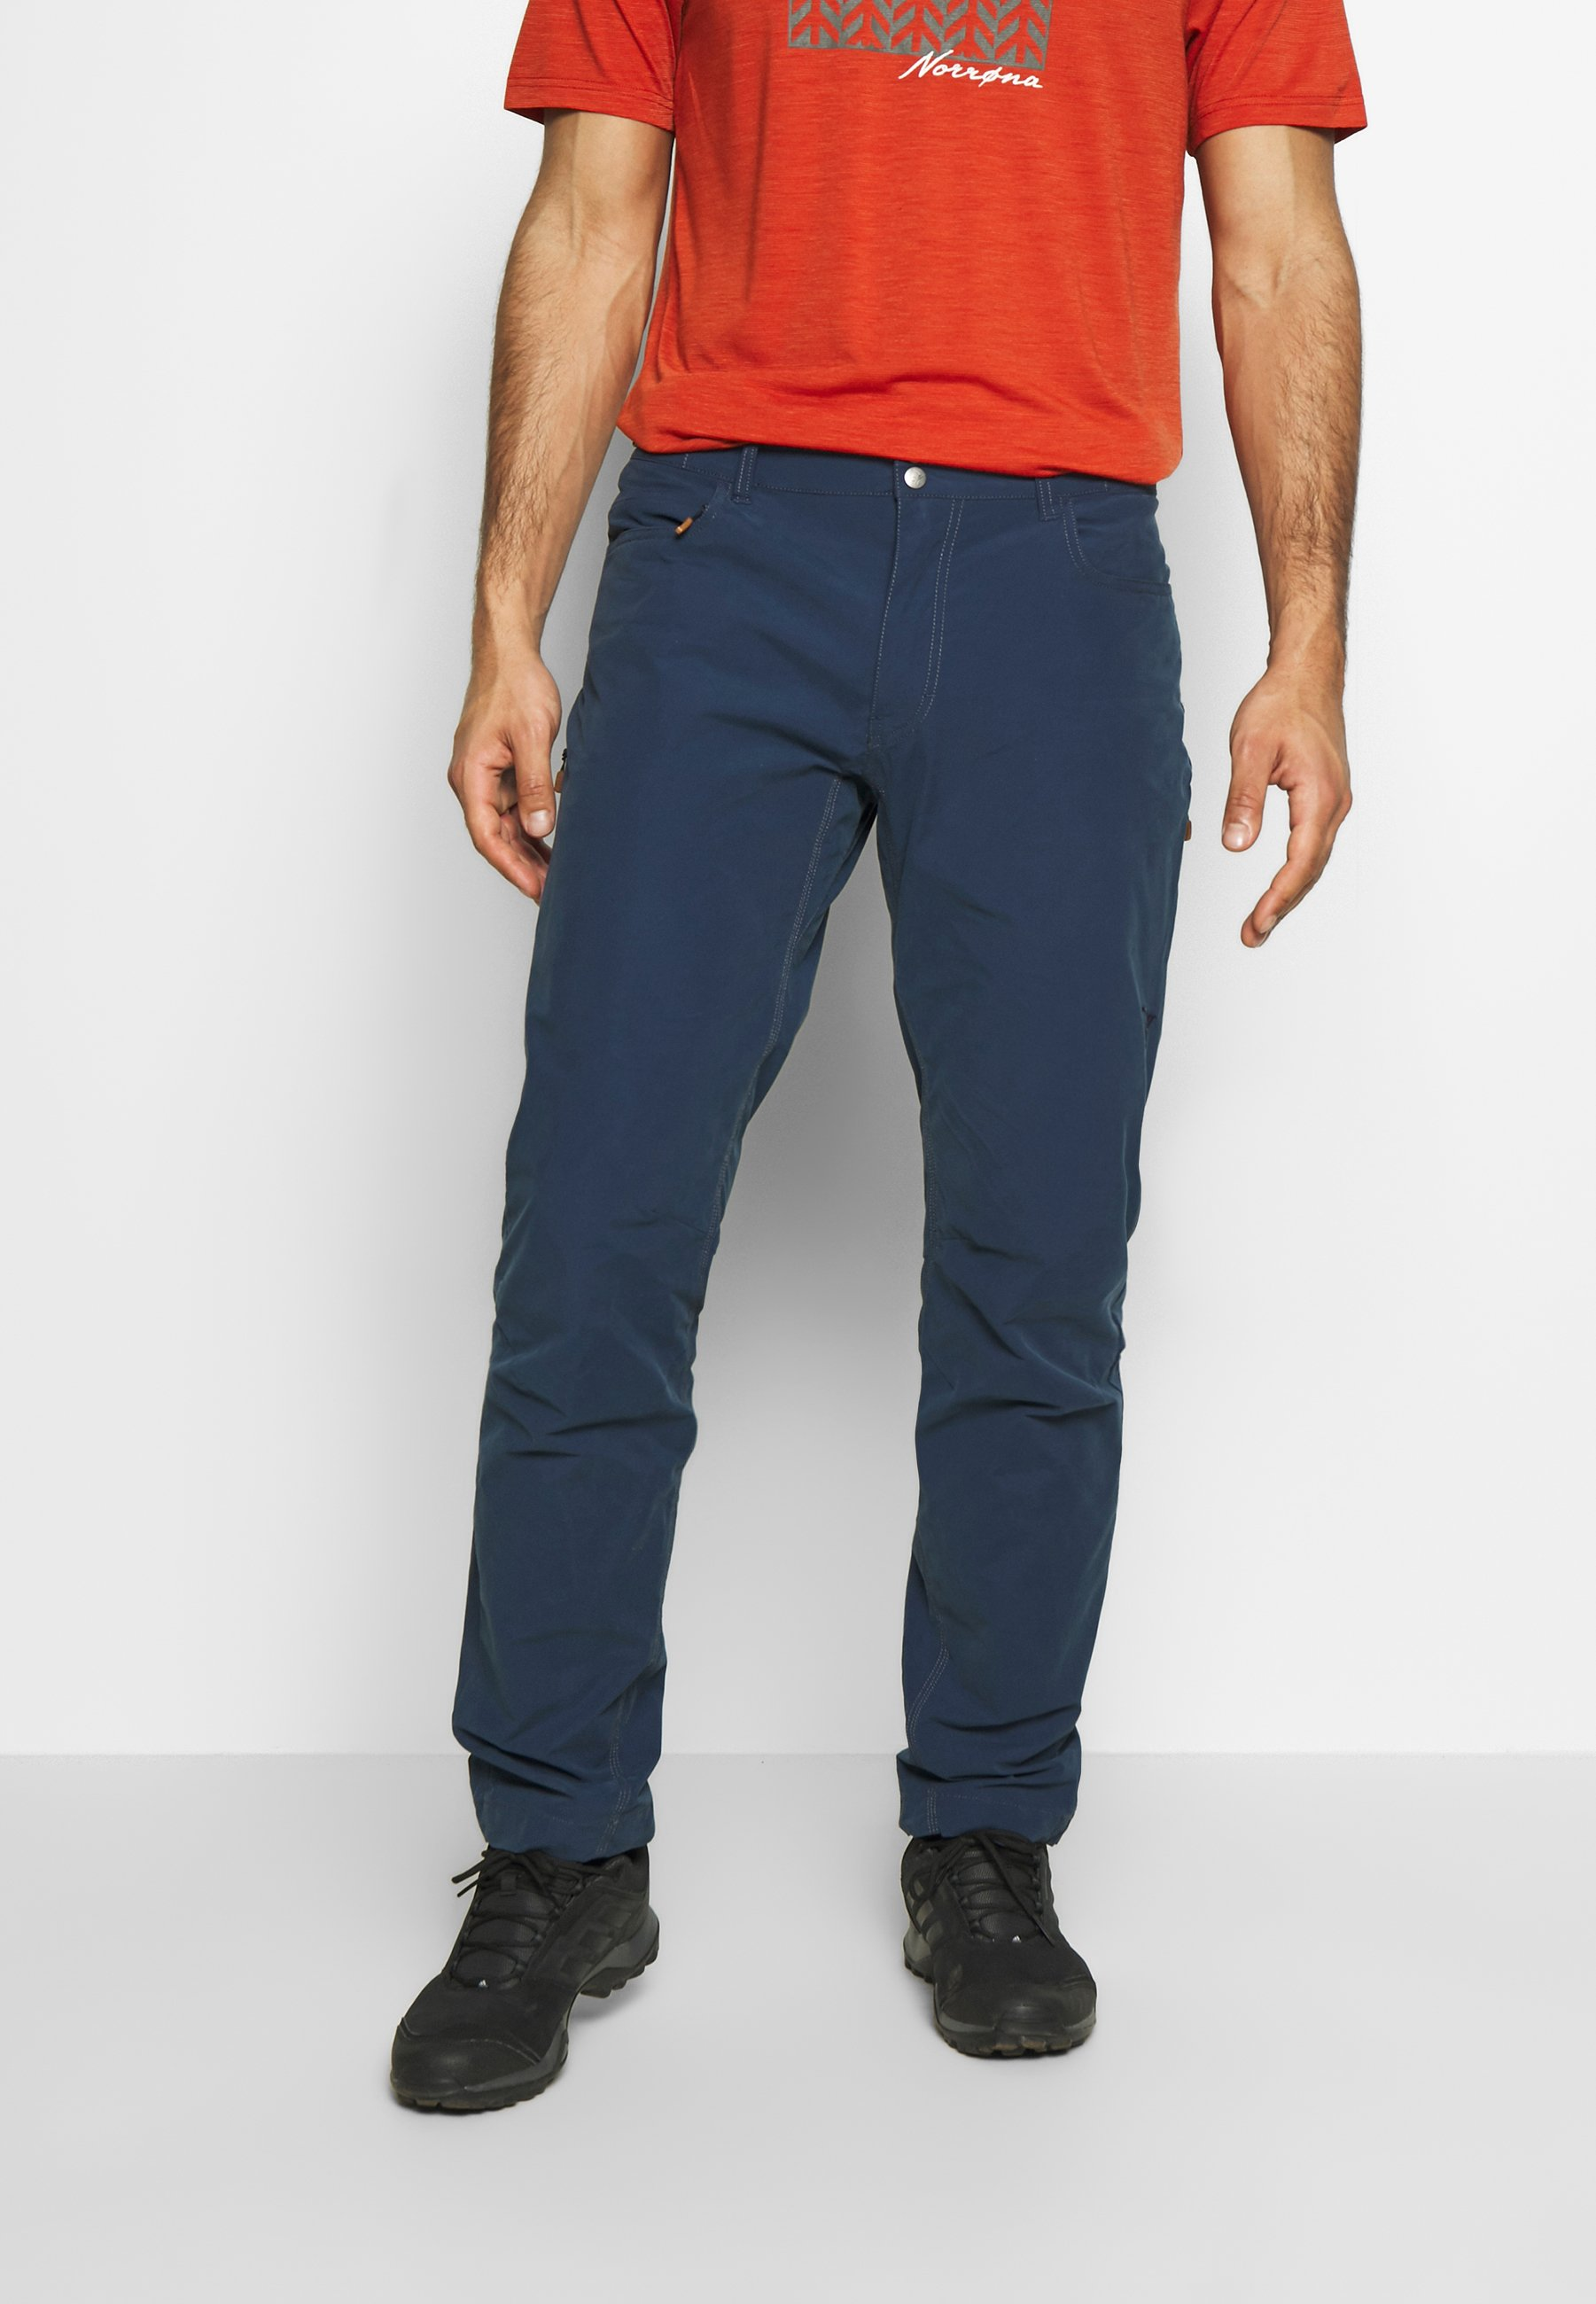 SVALBARD PANTS Bukse indigo night